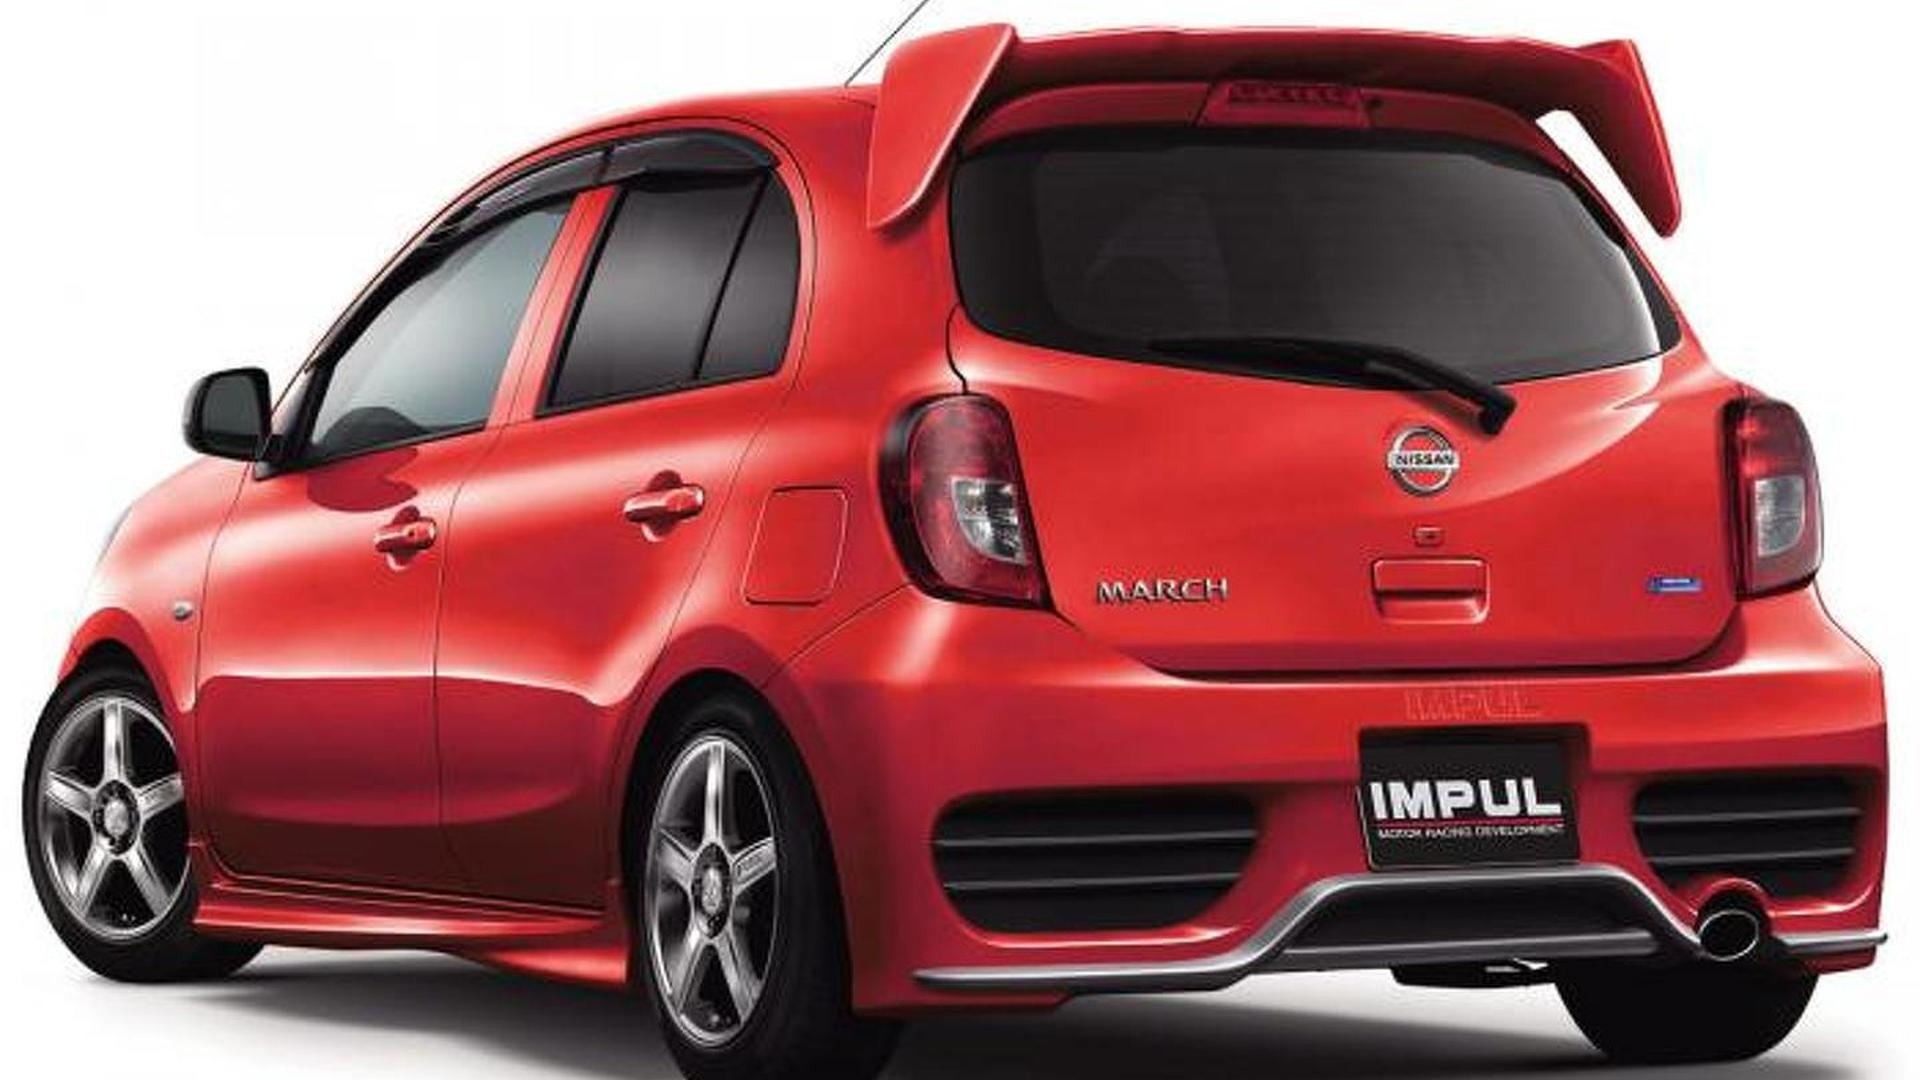 Nissan March Tuning >> Japanese Tuner Impul Releases Beefed Up Nissan Micra March